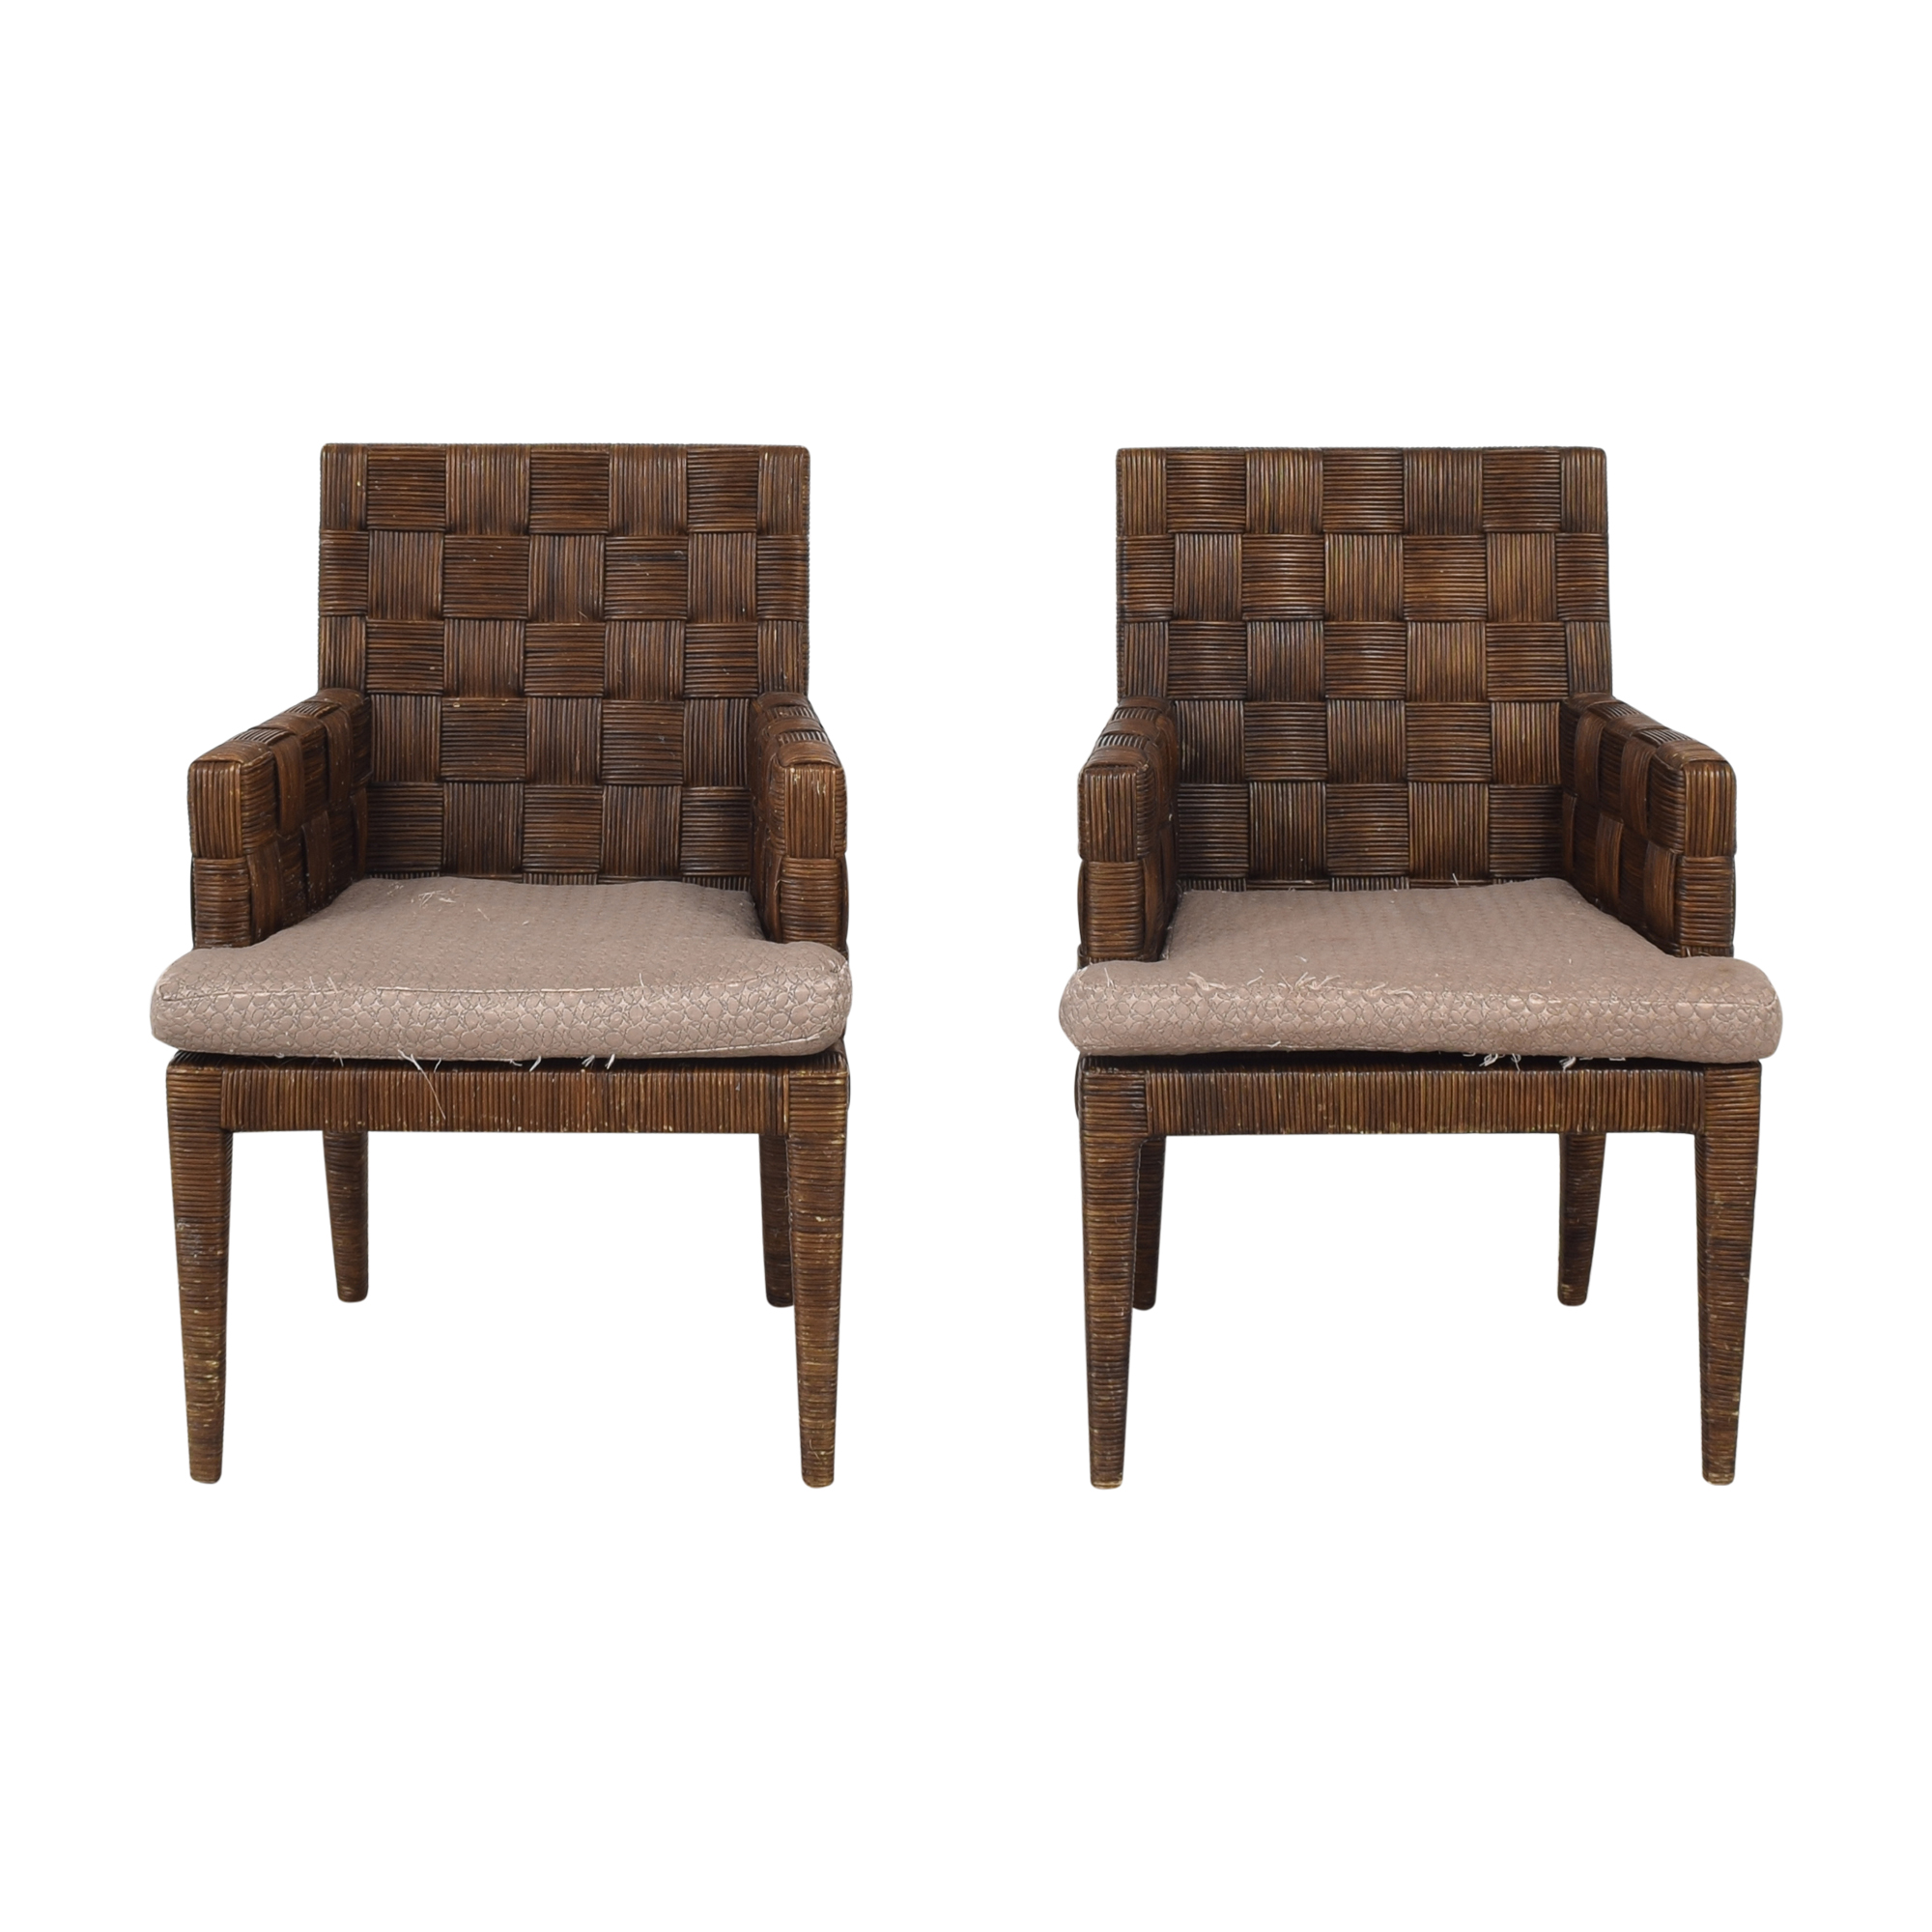 buy Donghia Donghia by John Hutton Block Island Dining Armchairs online